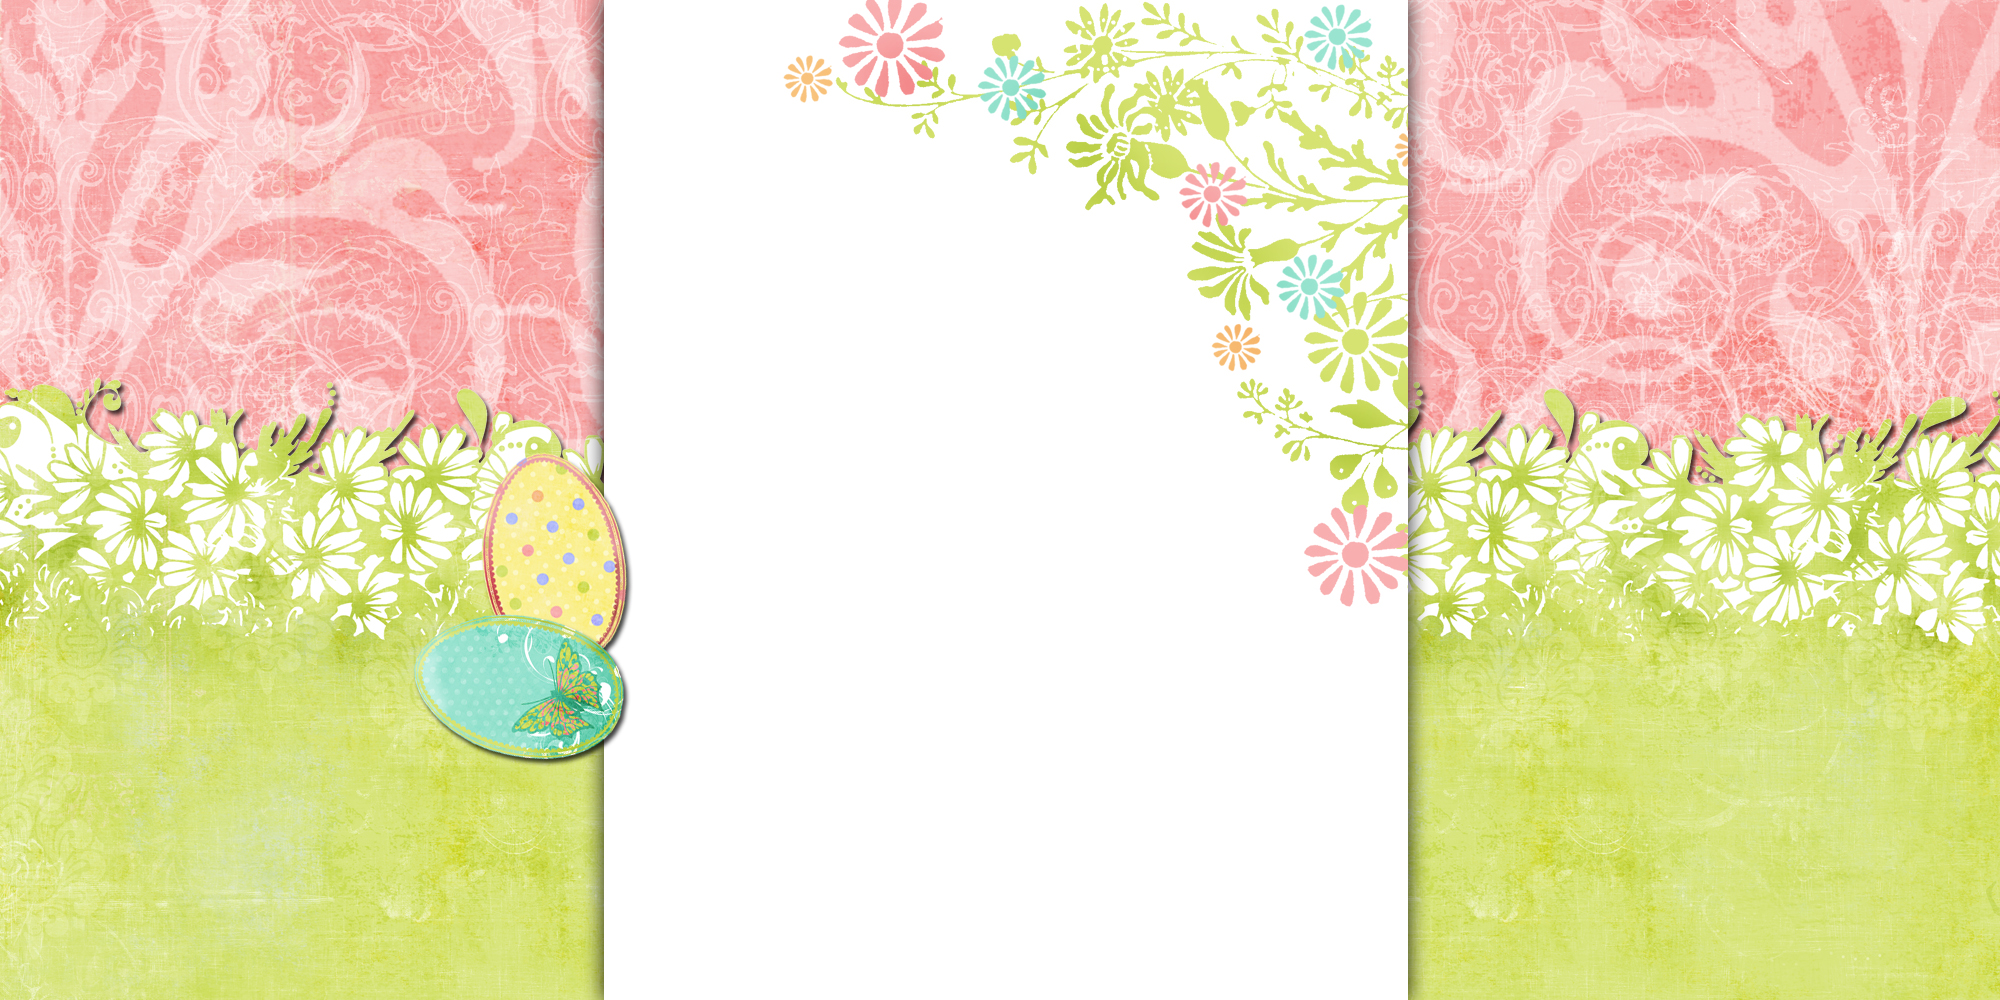 Easter Eggs | Free Blog Backgrounds | The Cutest Blog On The Block